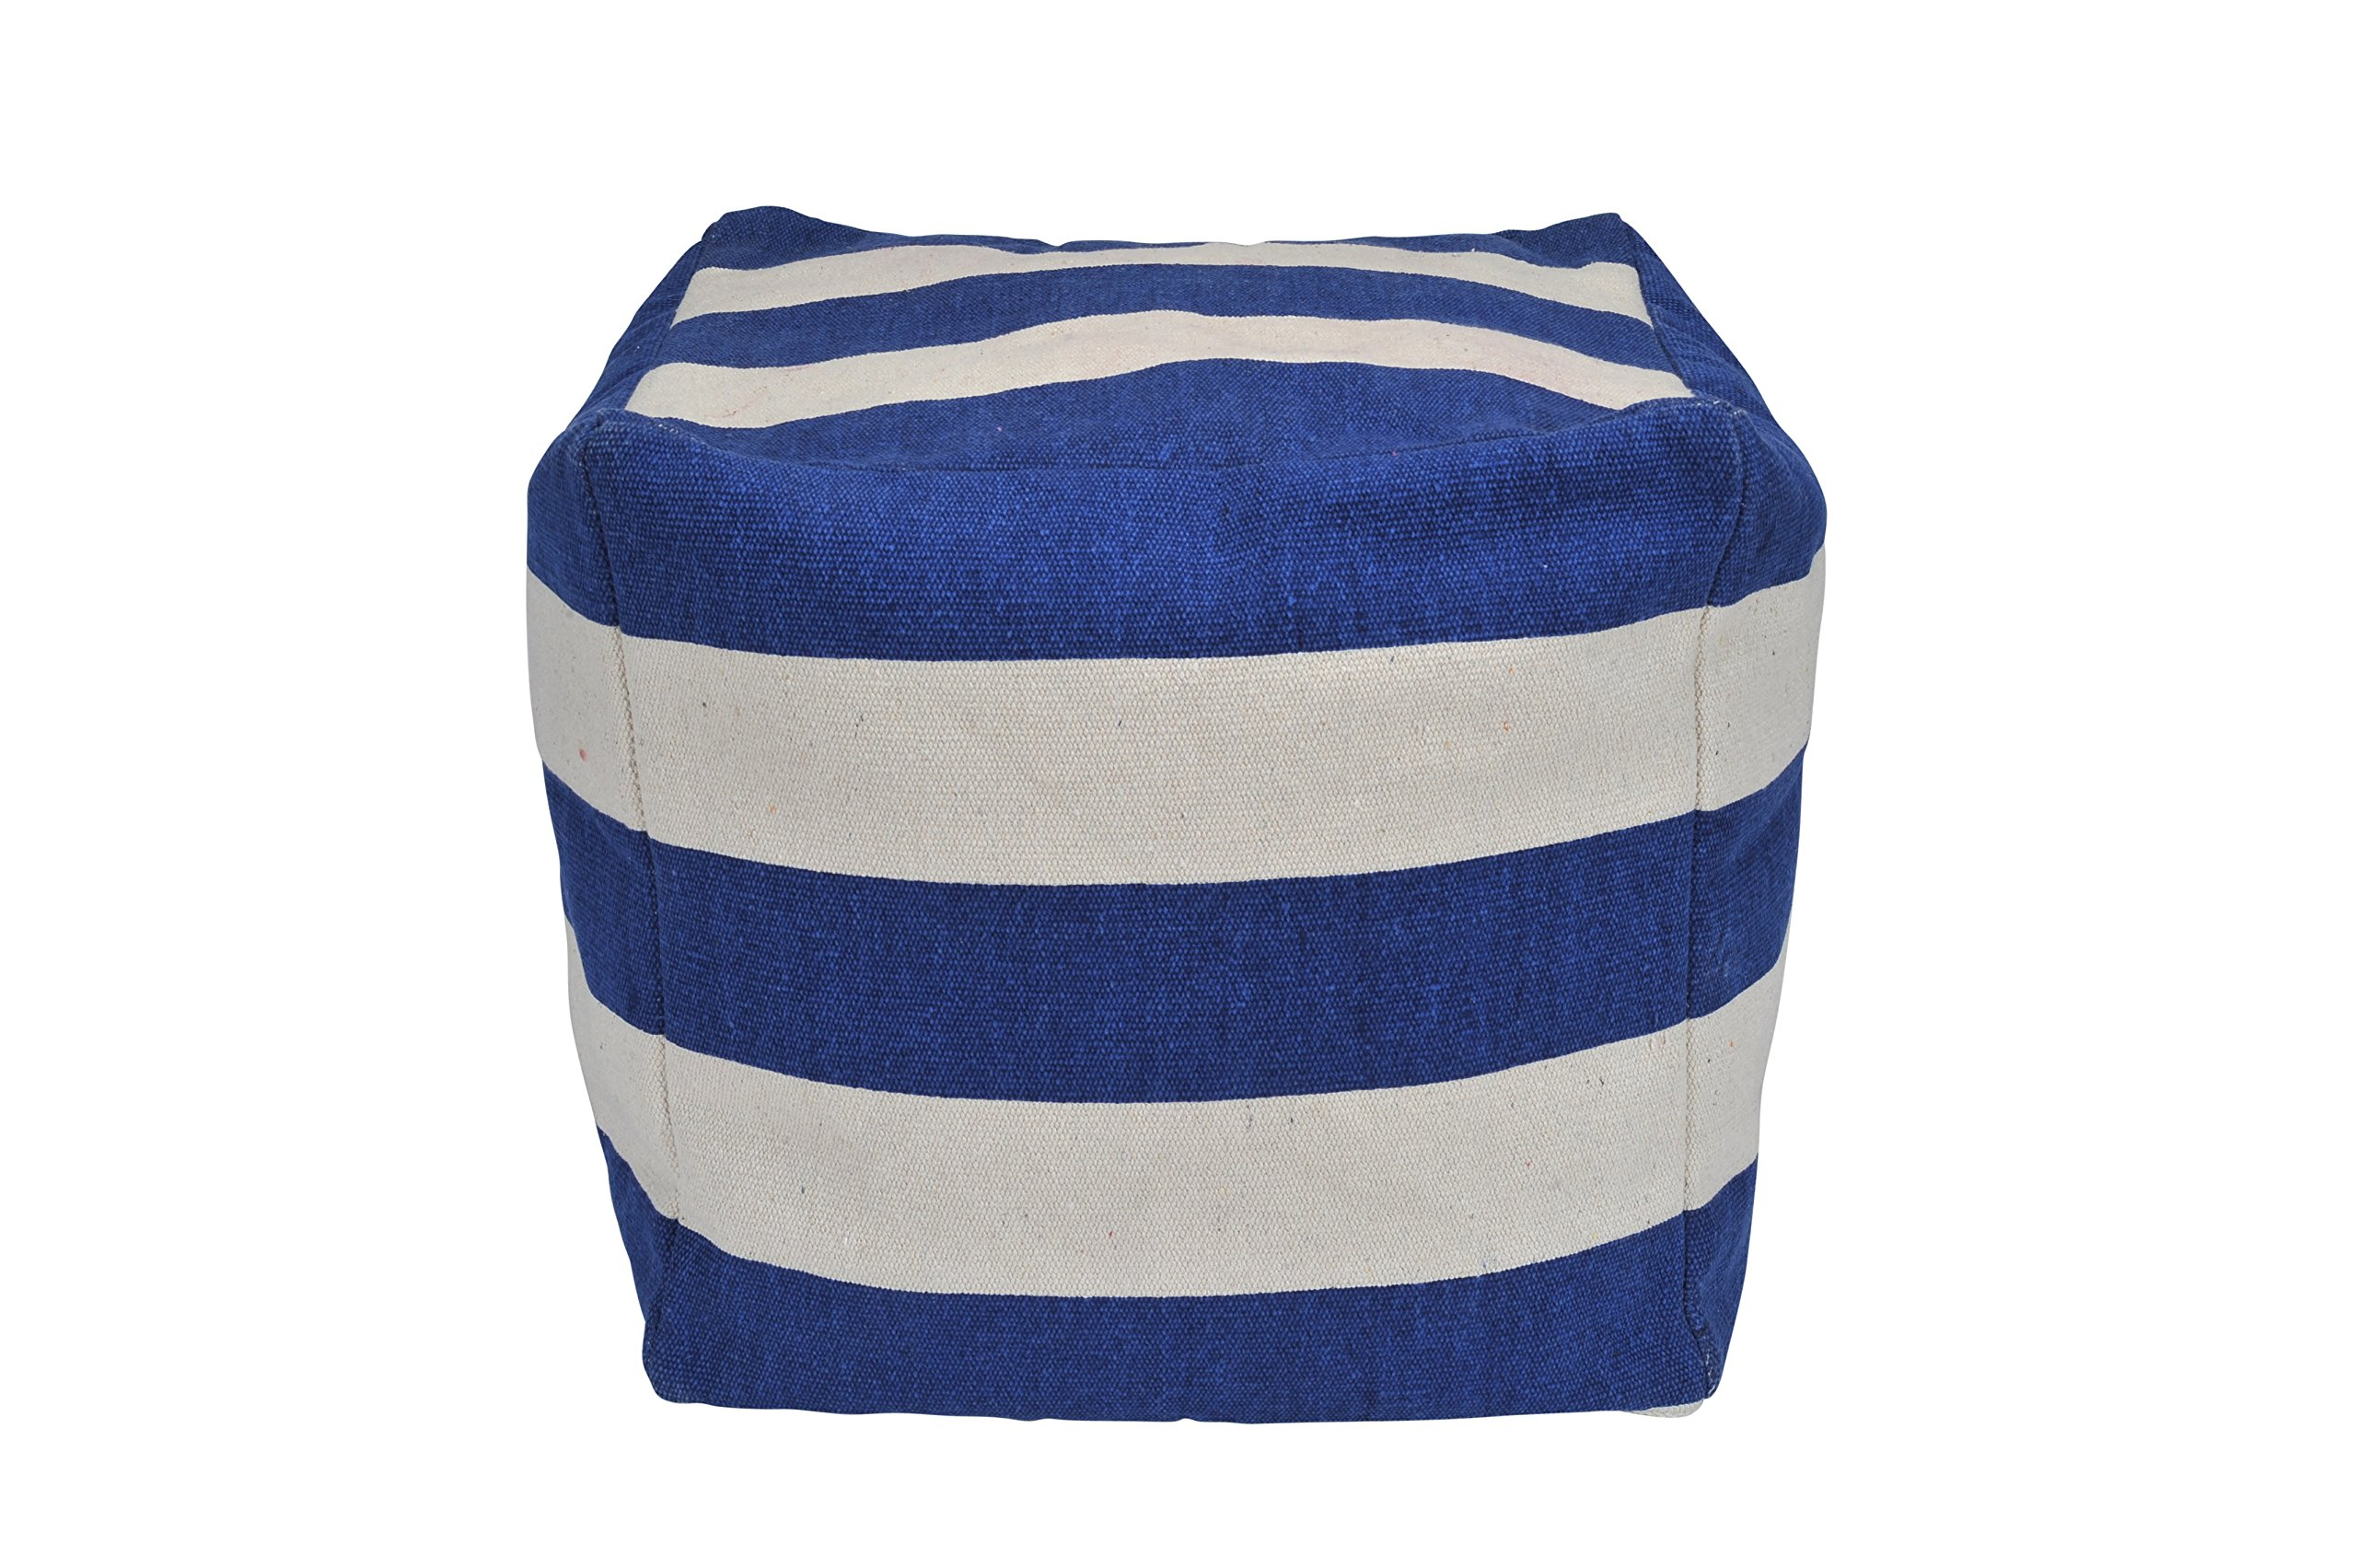 Urban Shop Striped Square Pouf, navy